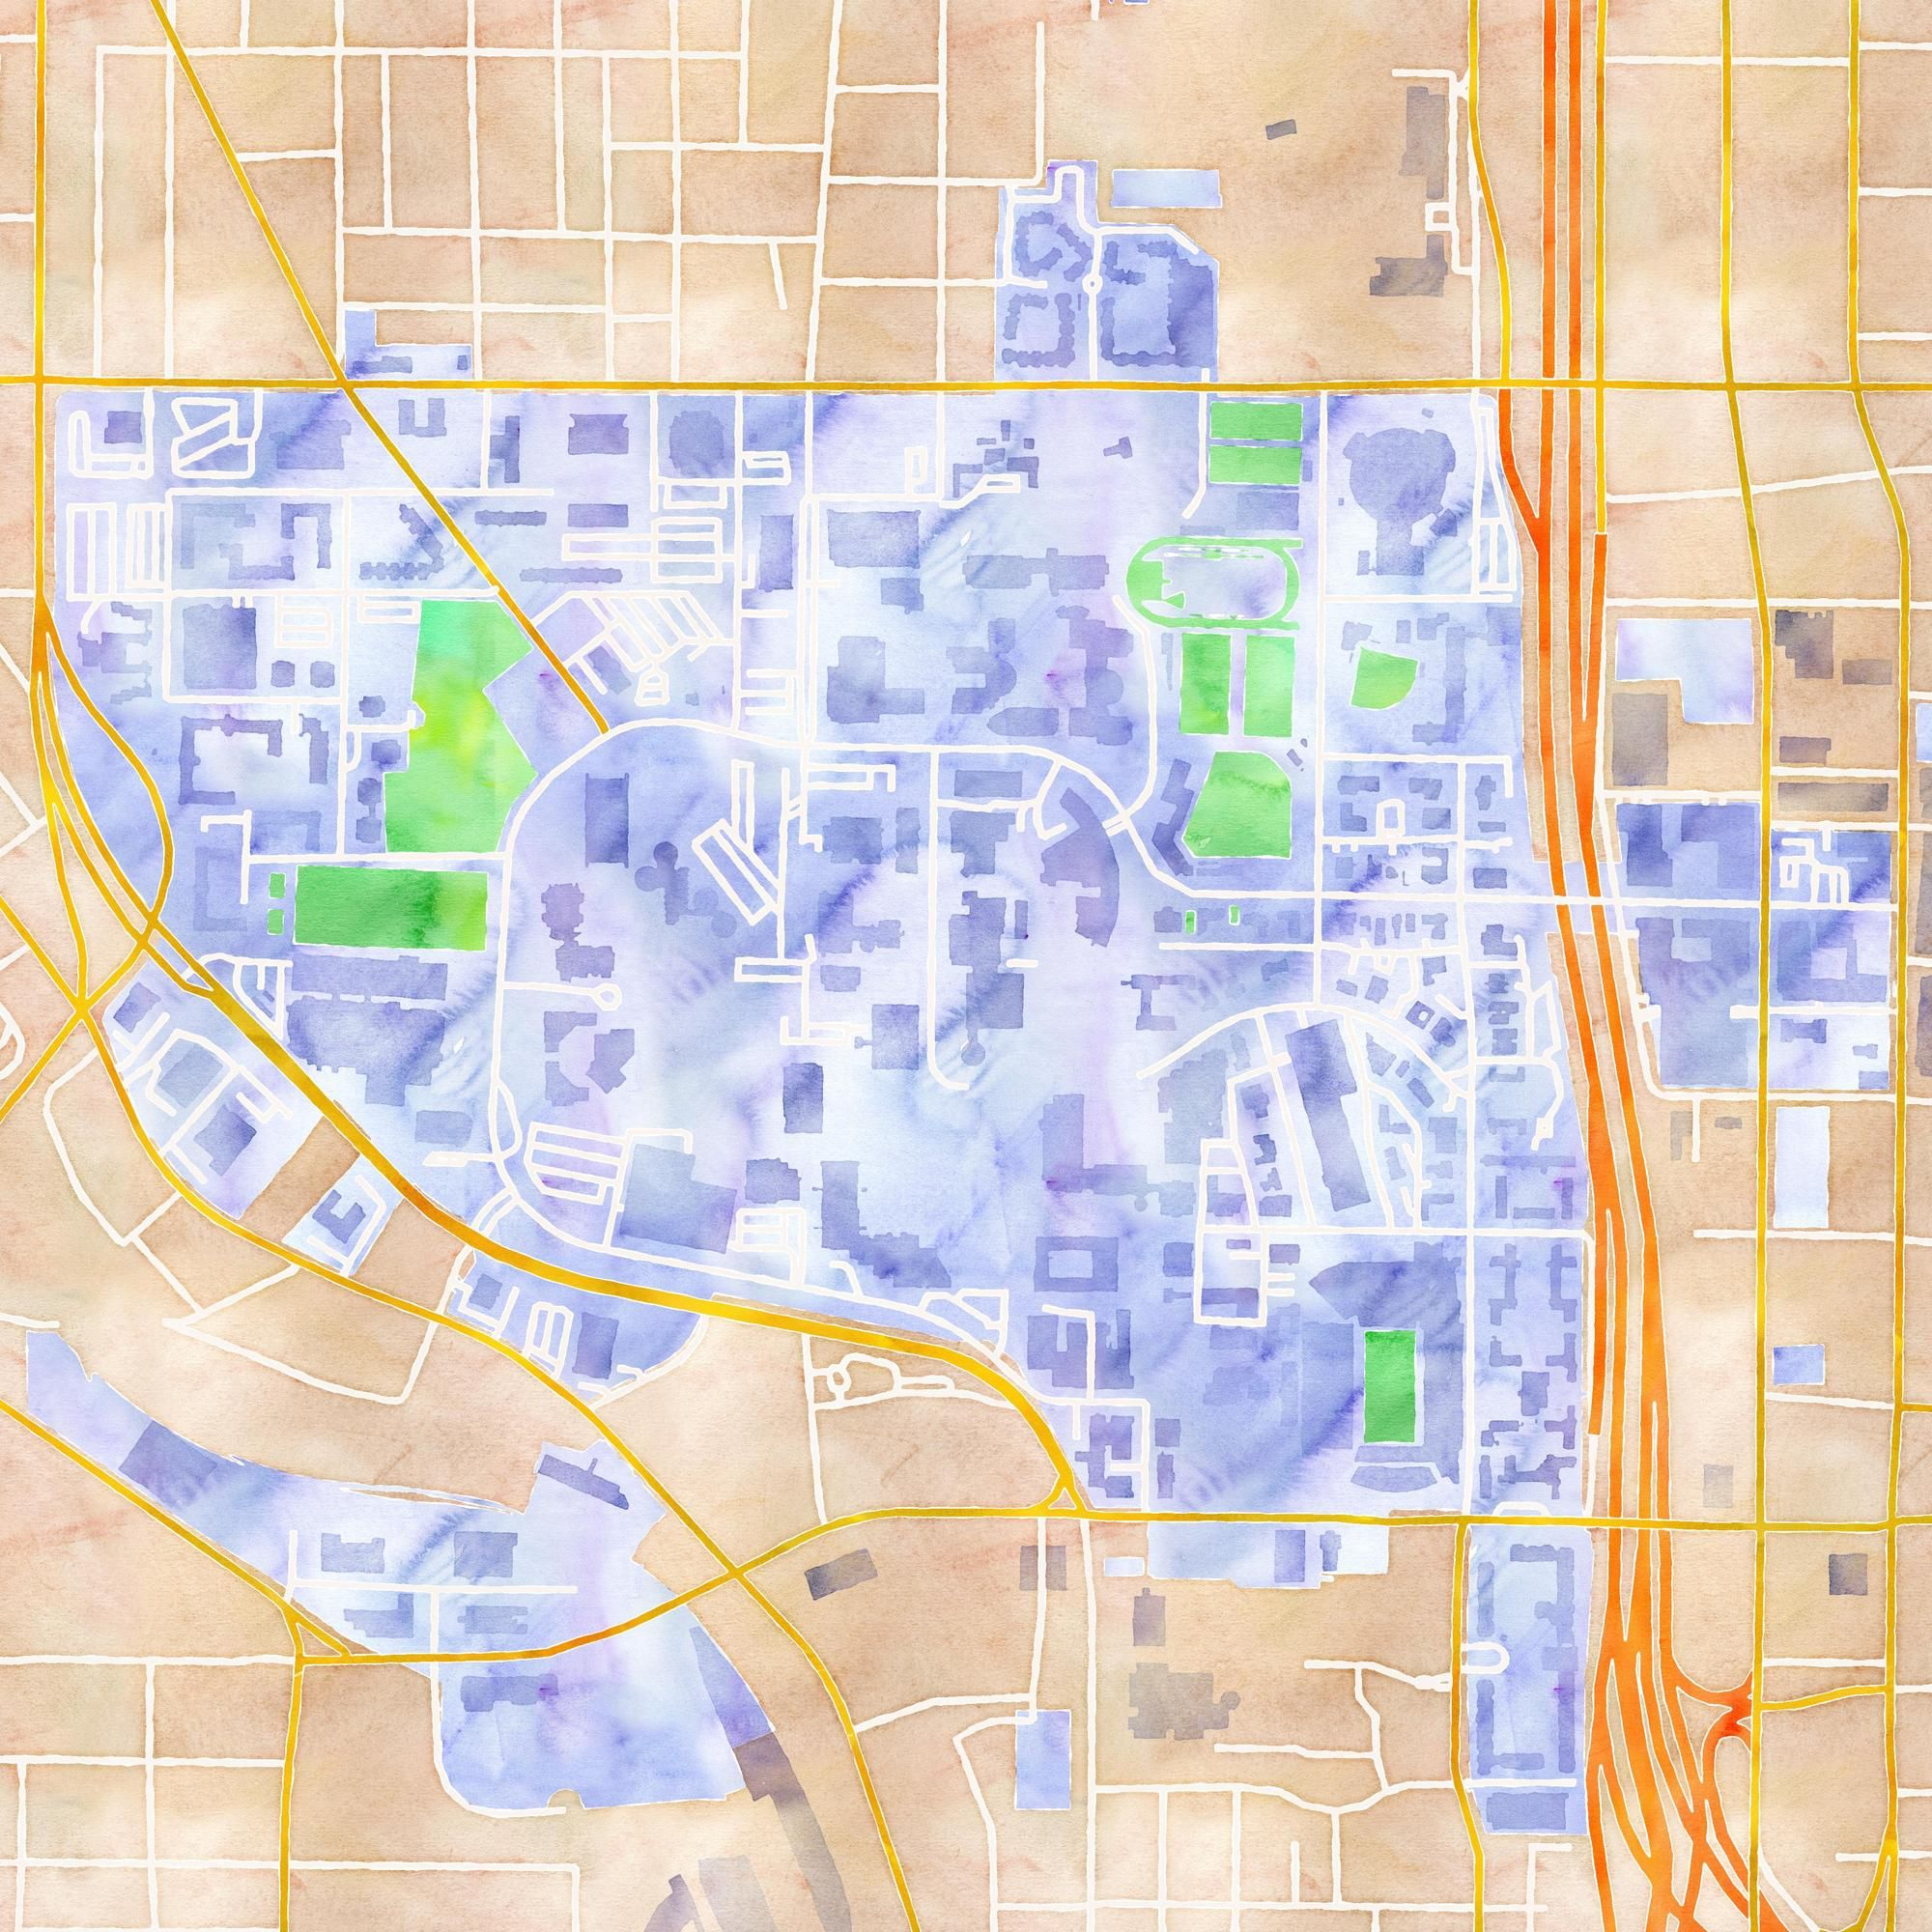 Map Of Georgia Tech Campus.Georgia Tech Watercolor Map Map Tiles By Stamen Design Under Cc